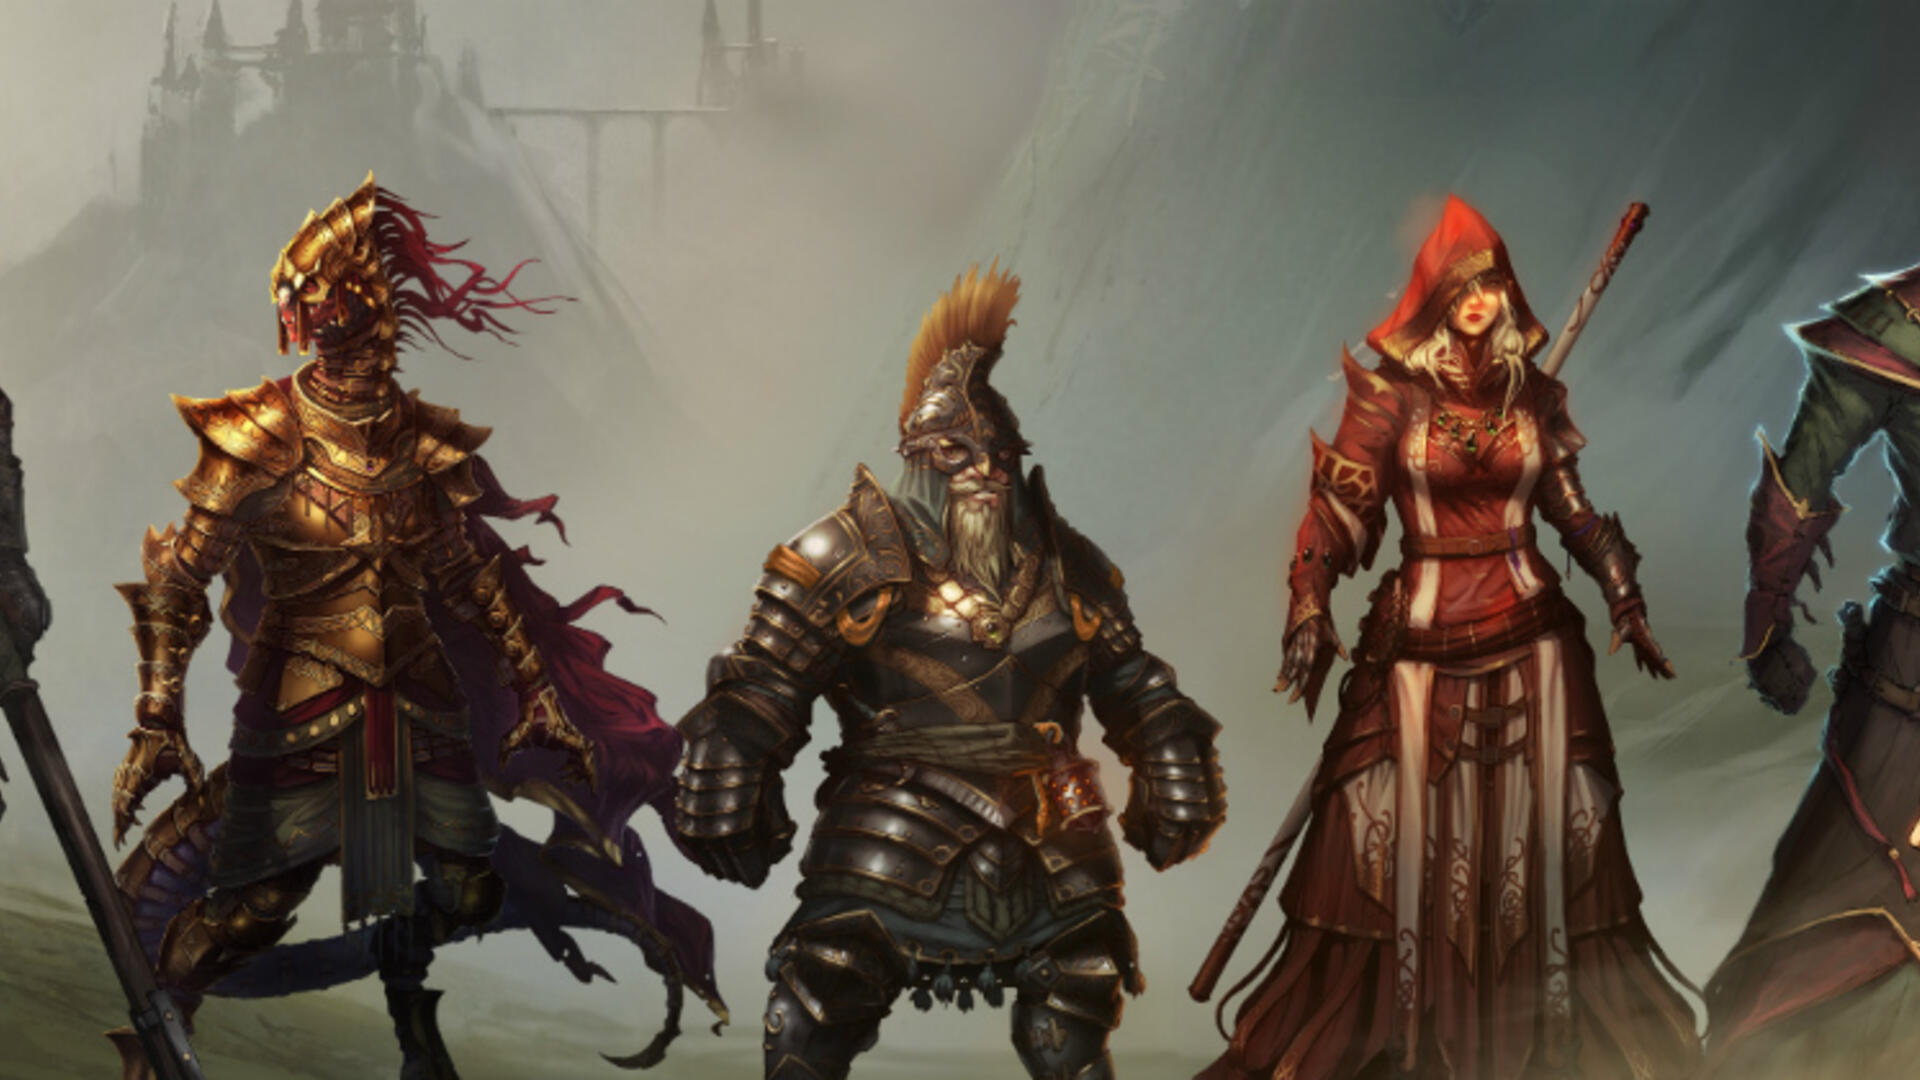 Divinity: Original Sin 2 Expands Its Narrative with